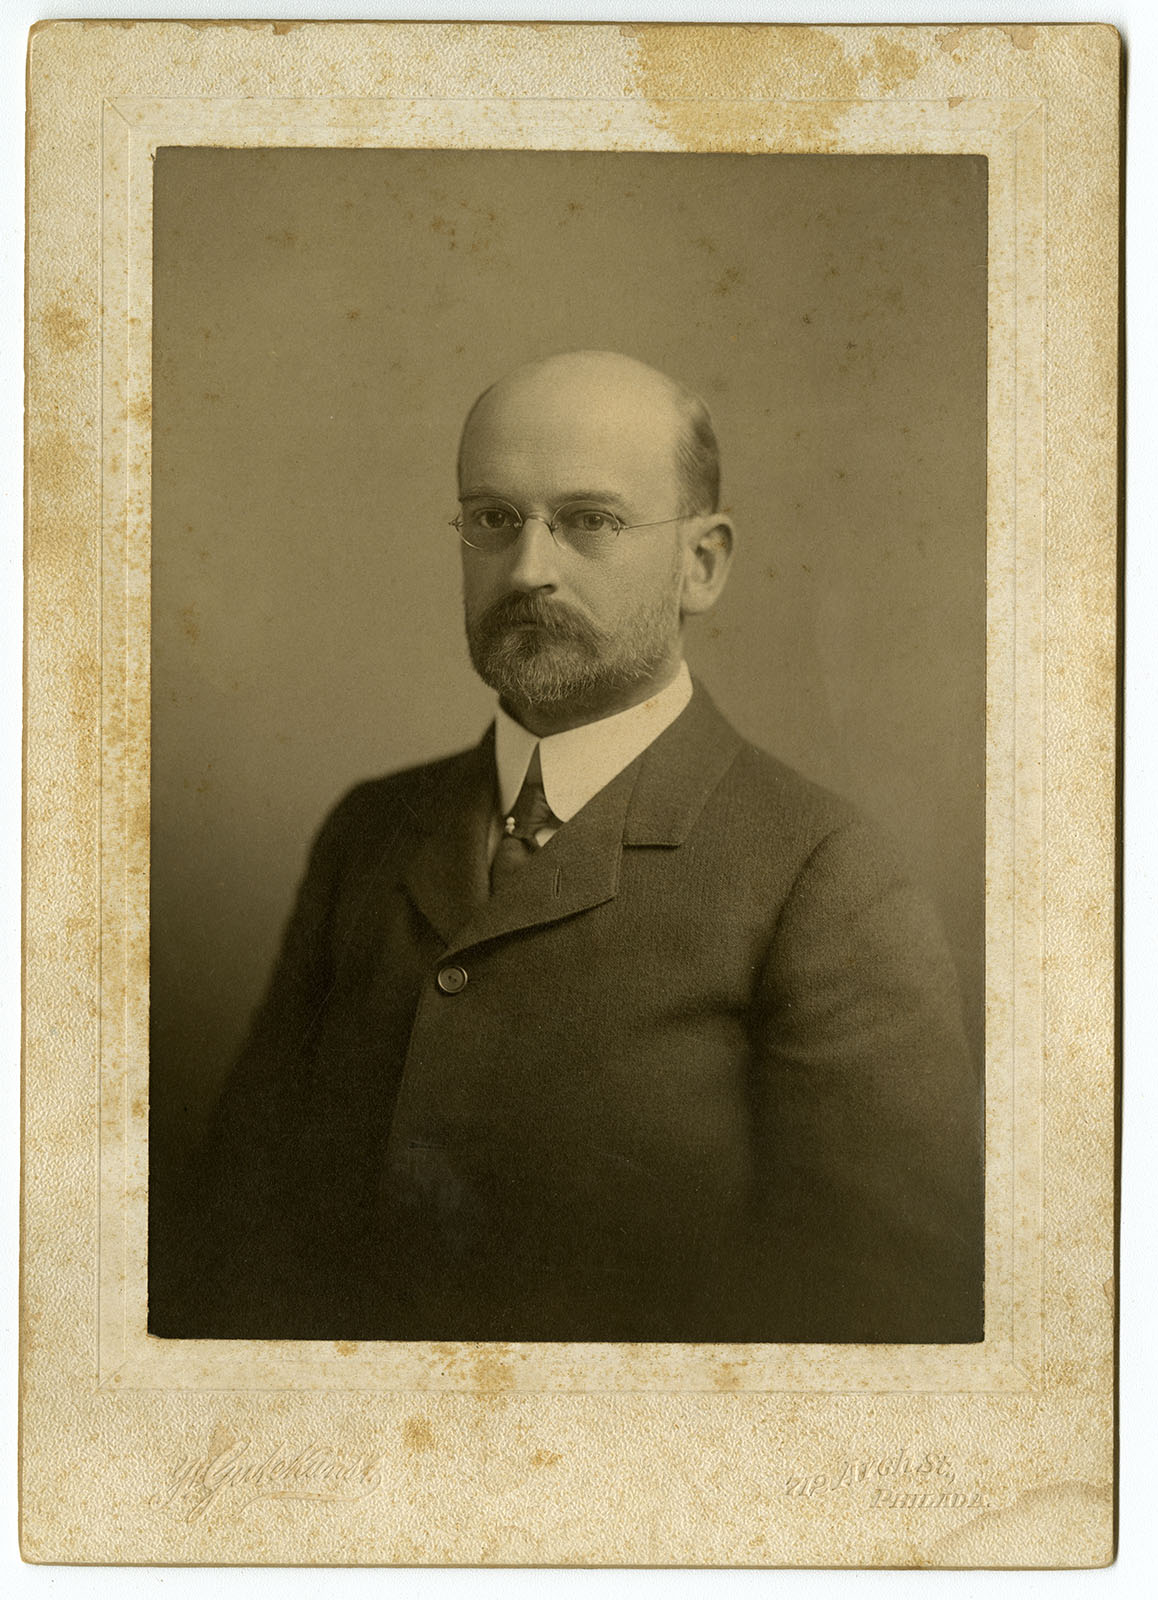 Frederick Gutekunst, William J. Taylor. (Philadelphia, ca. 1905). Albumen print cabinet card. Loan courtesy of the Historical Society of Pennsylvania.